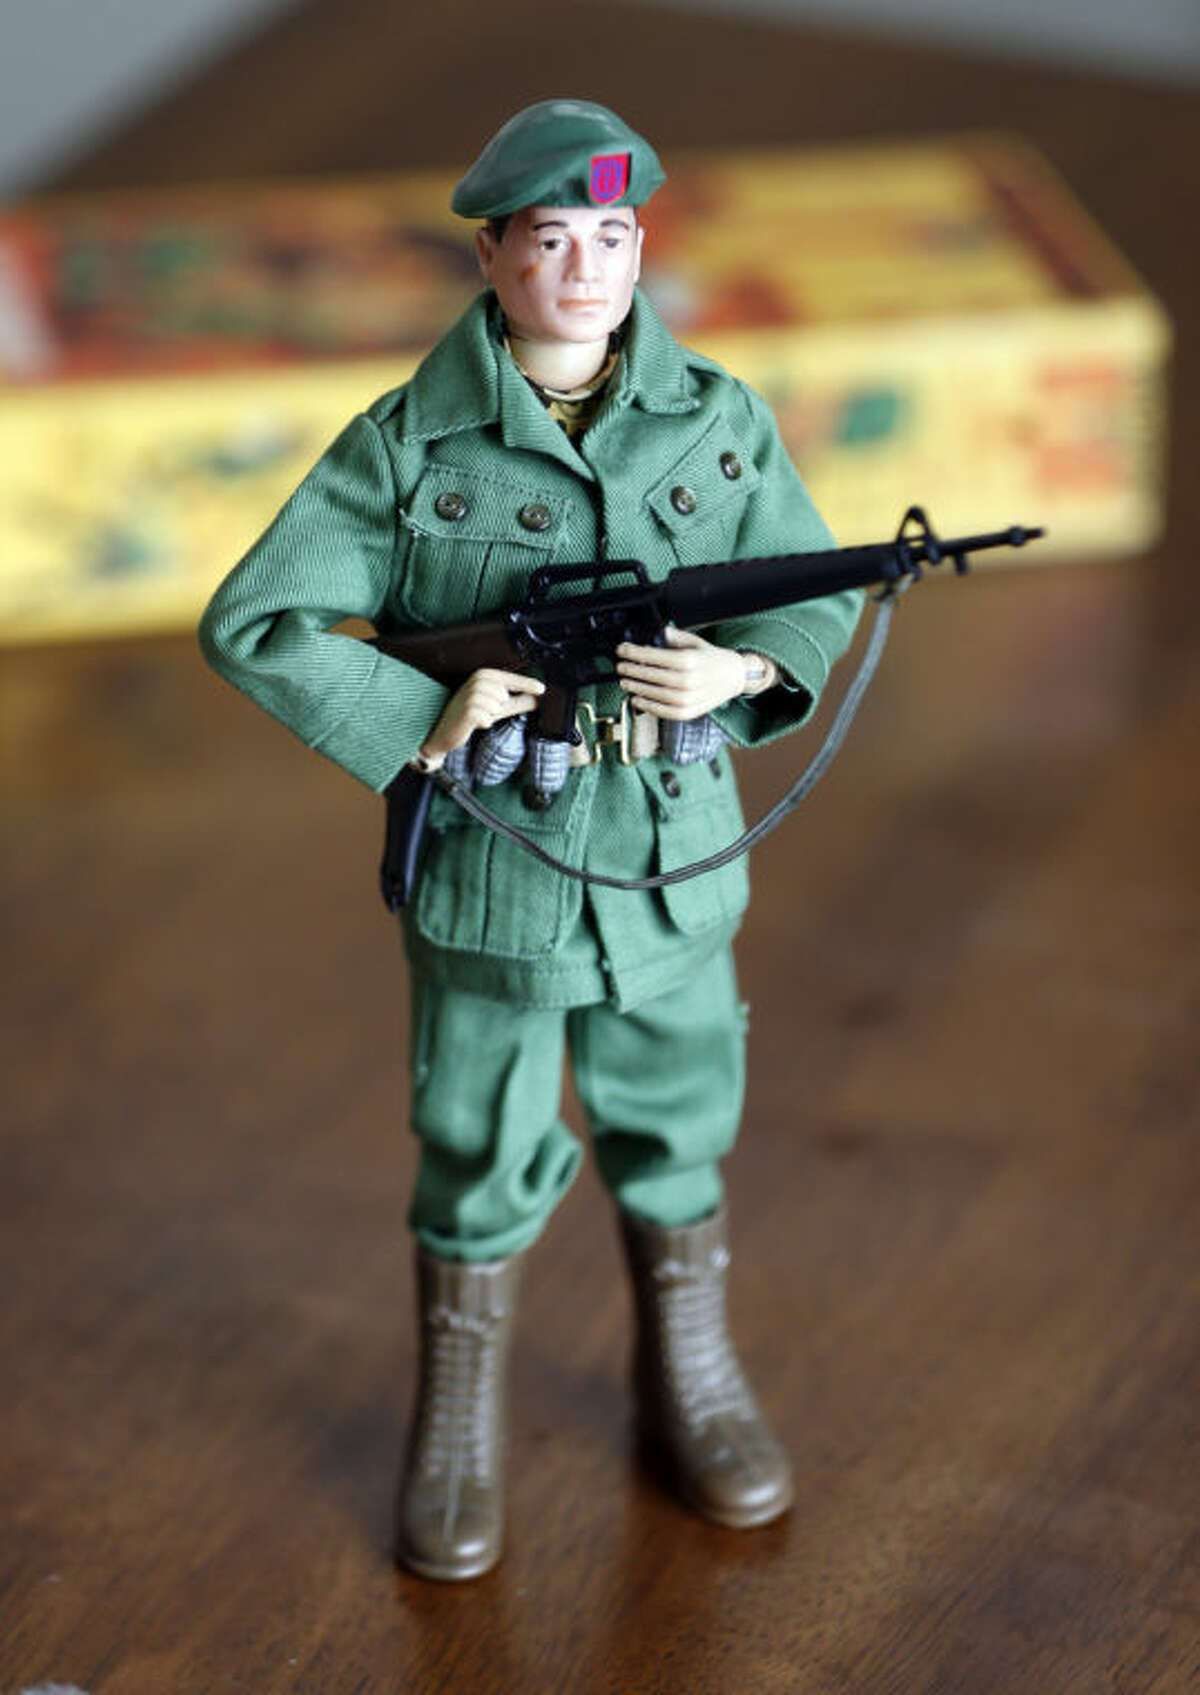 This Jan. 31, 2014 photo shows one of Tearle Ashby's G.I. Joe action figures in Niskayuna, N.Y. A half-century after the 12-inch doll was introduced at a New York City toy fair, the iconic action figure is being celebrated by collectors with a display at the New York State Military Museum, while the toy's maker plans other anniversary events to be announced later this month. (AP Photo/Mike Groll)